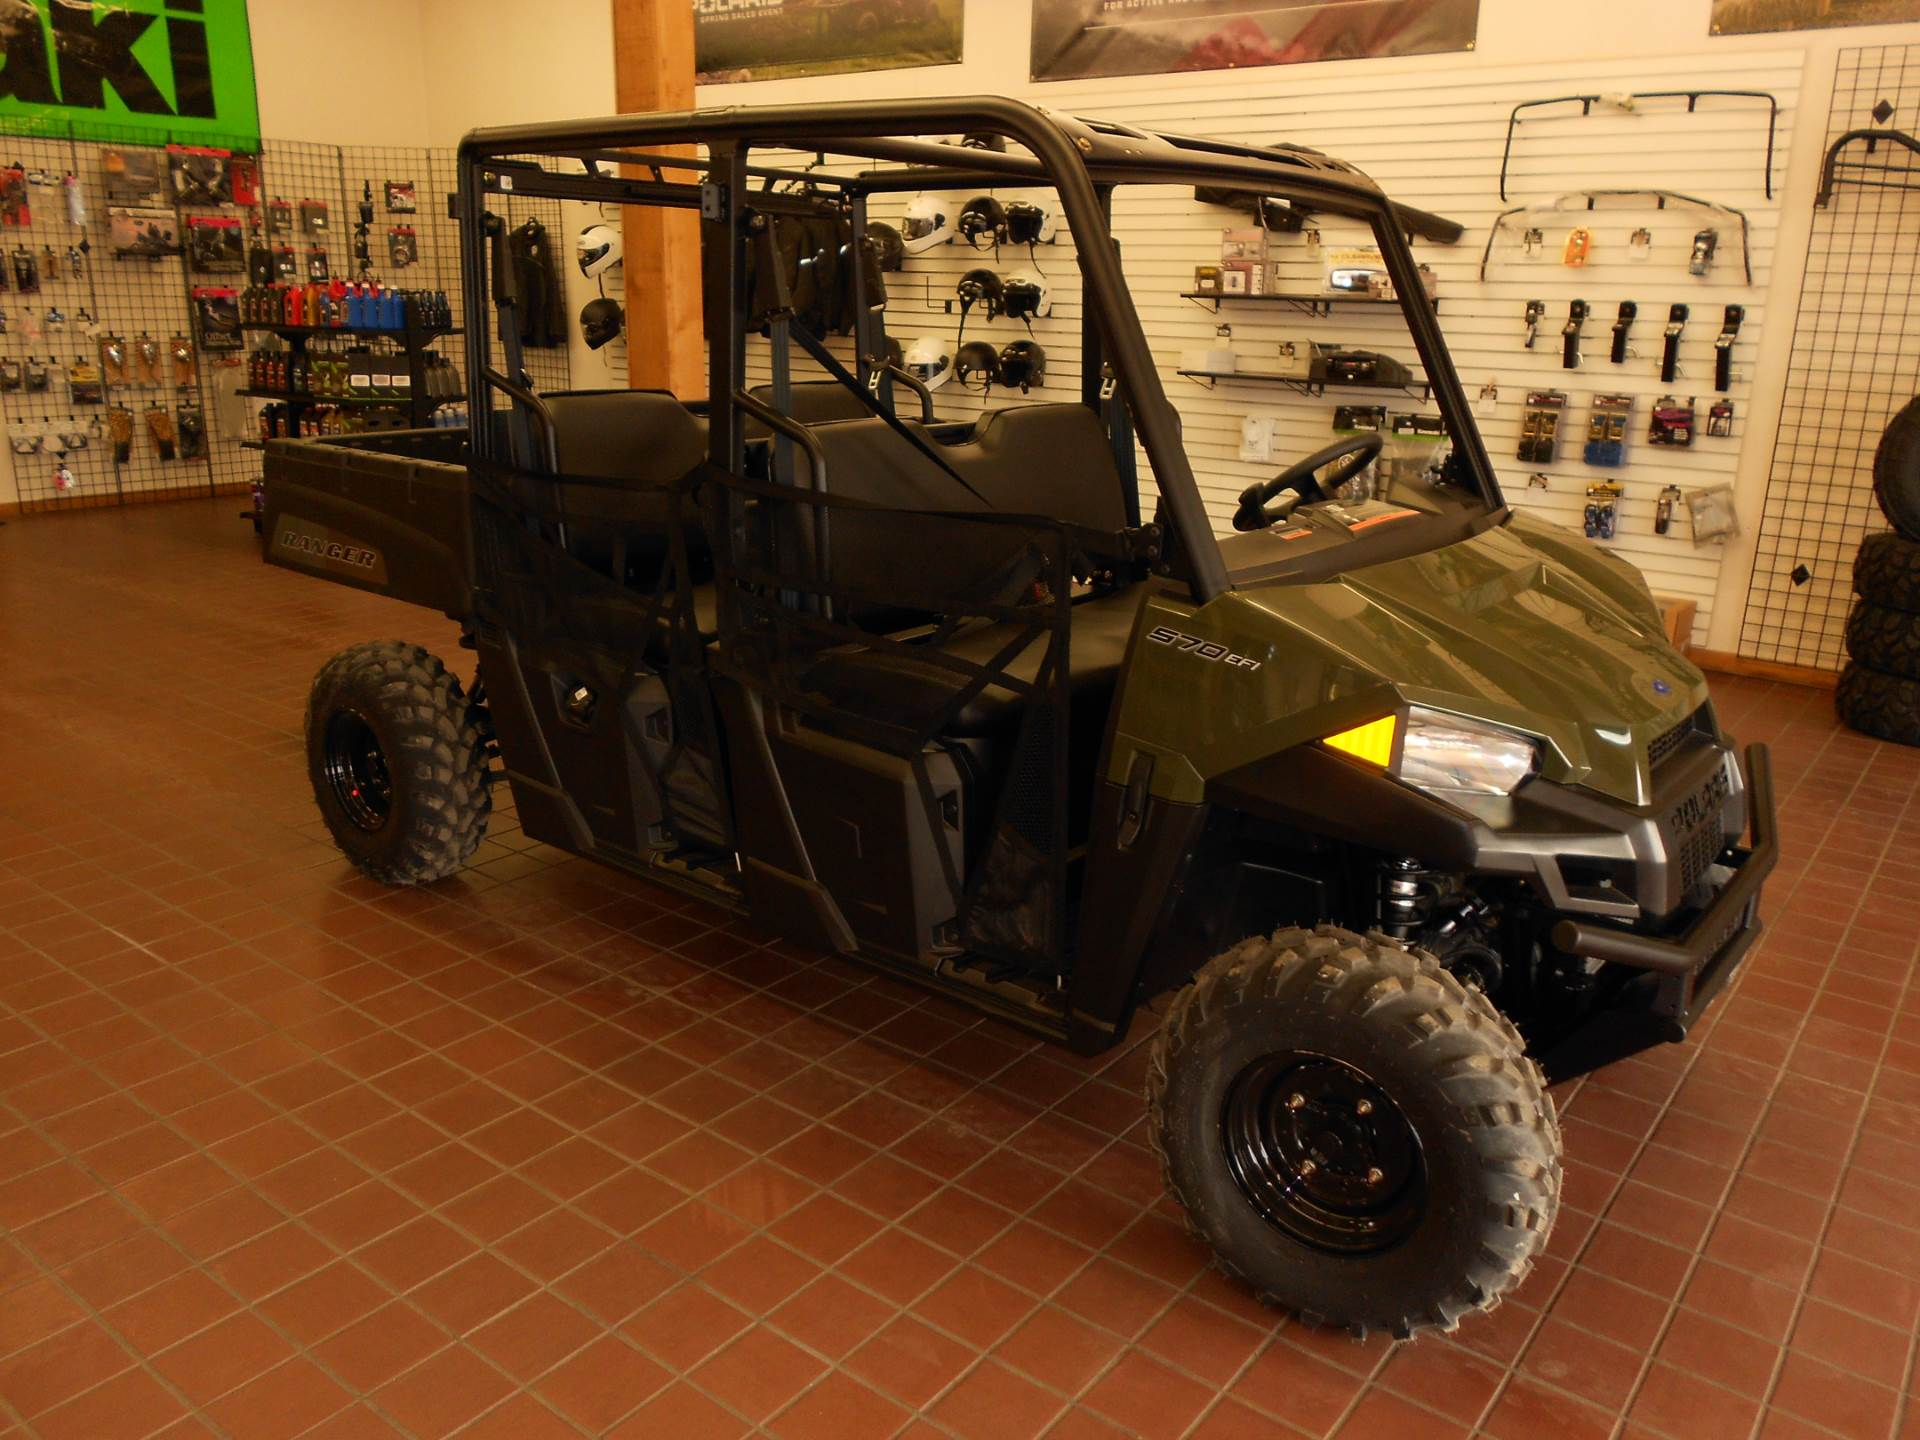 2021 Polaris Ranger Crew 570 in Abilene, Texas - Photo 3